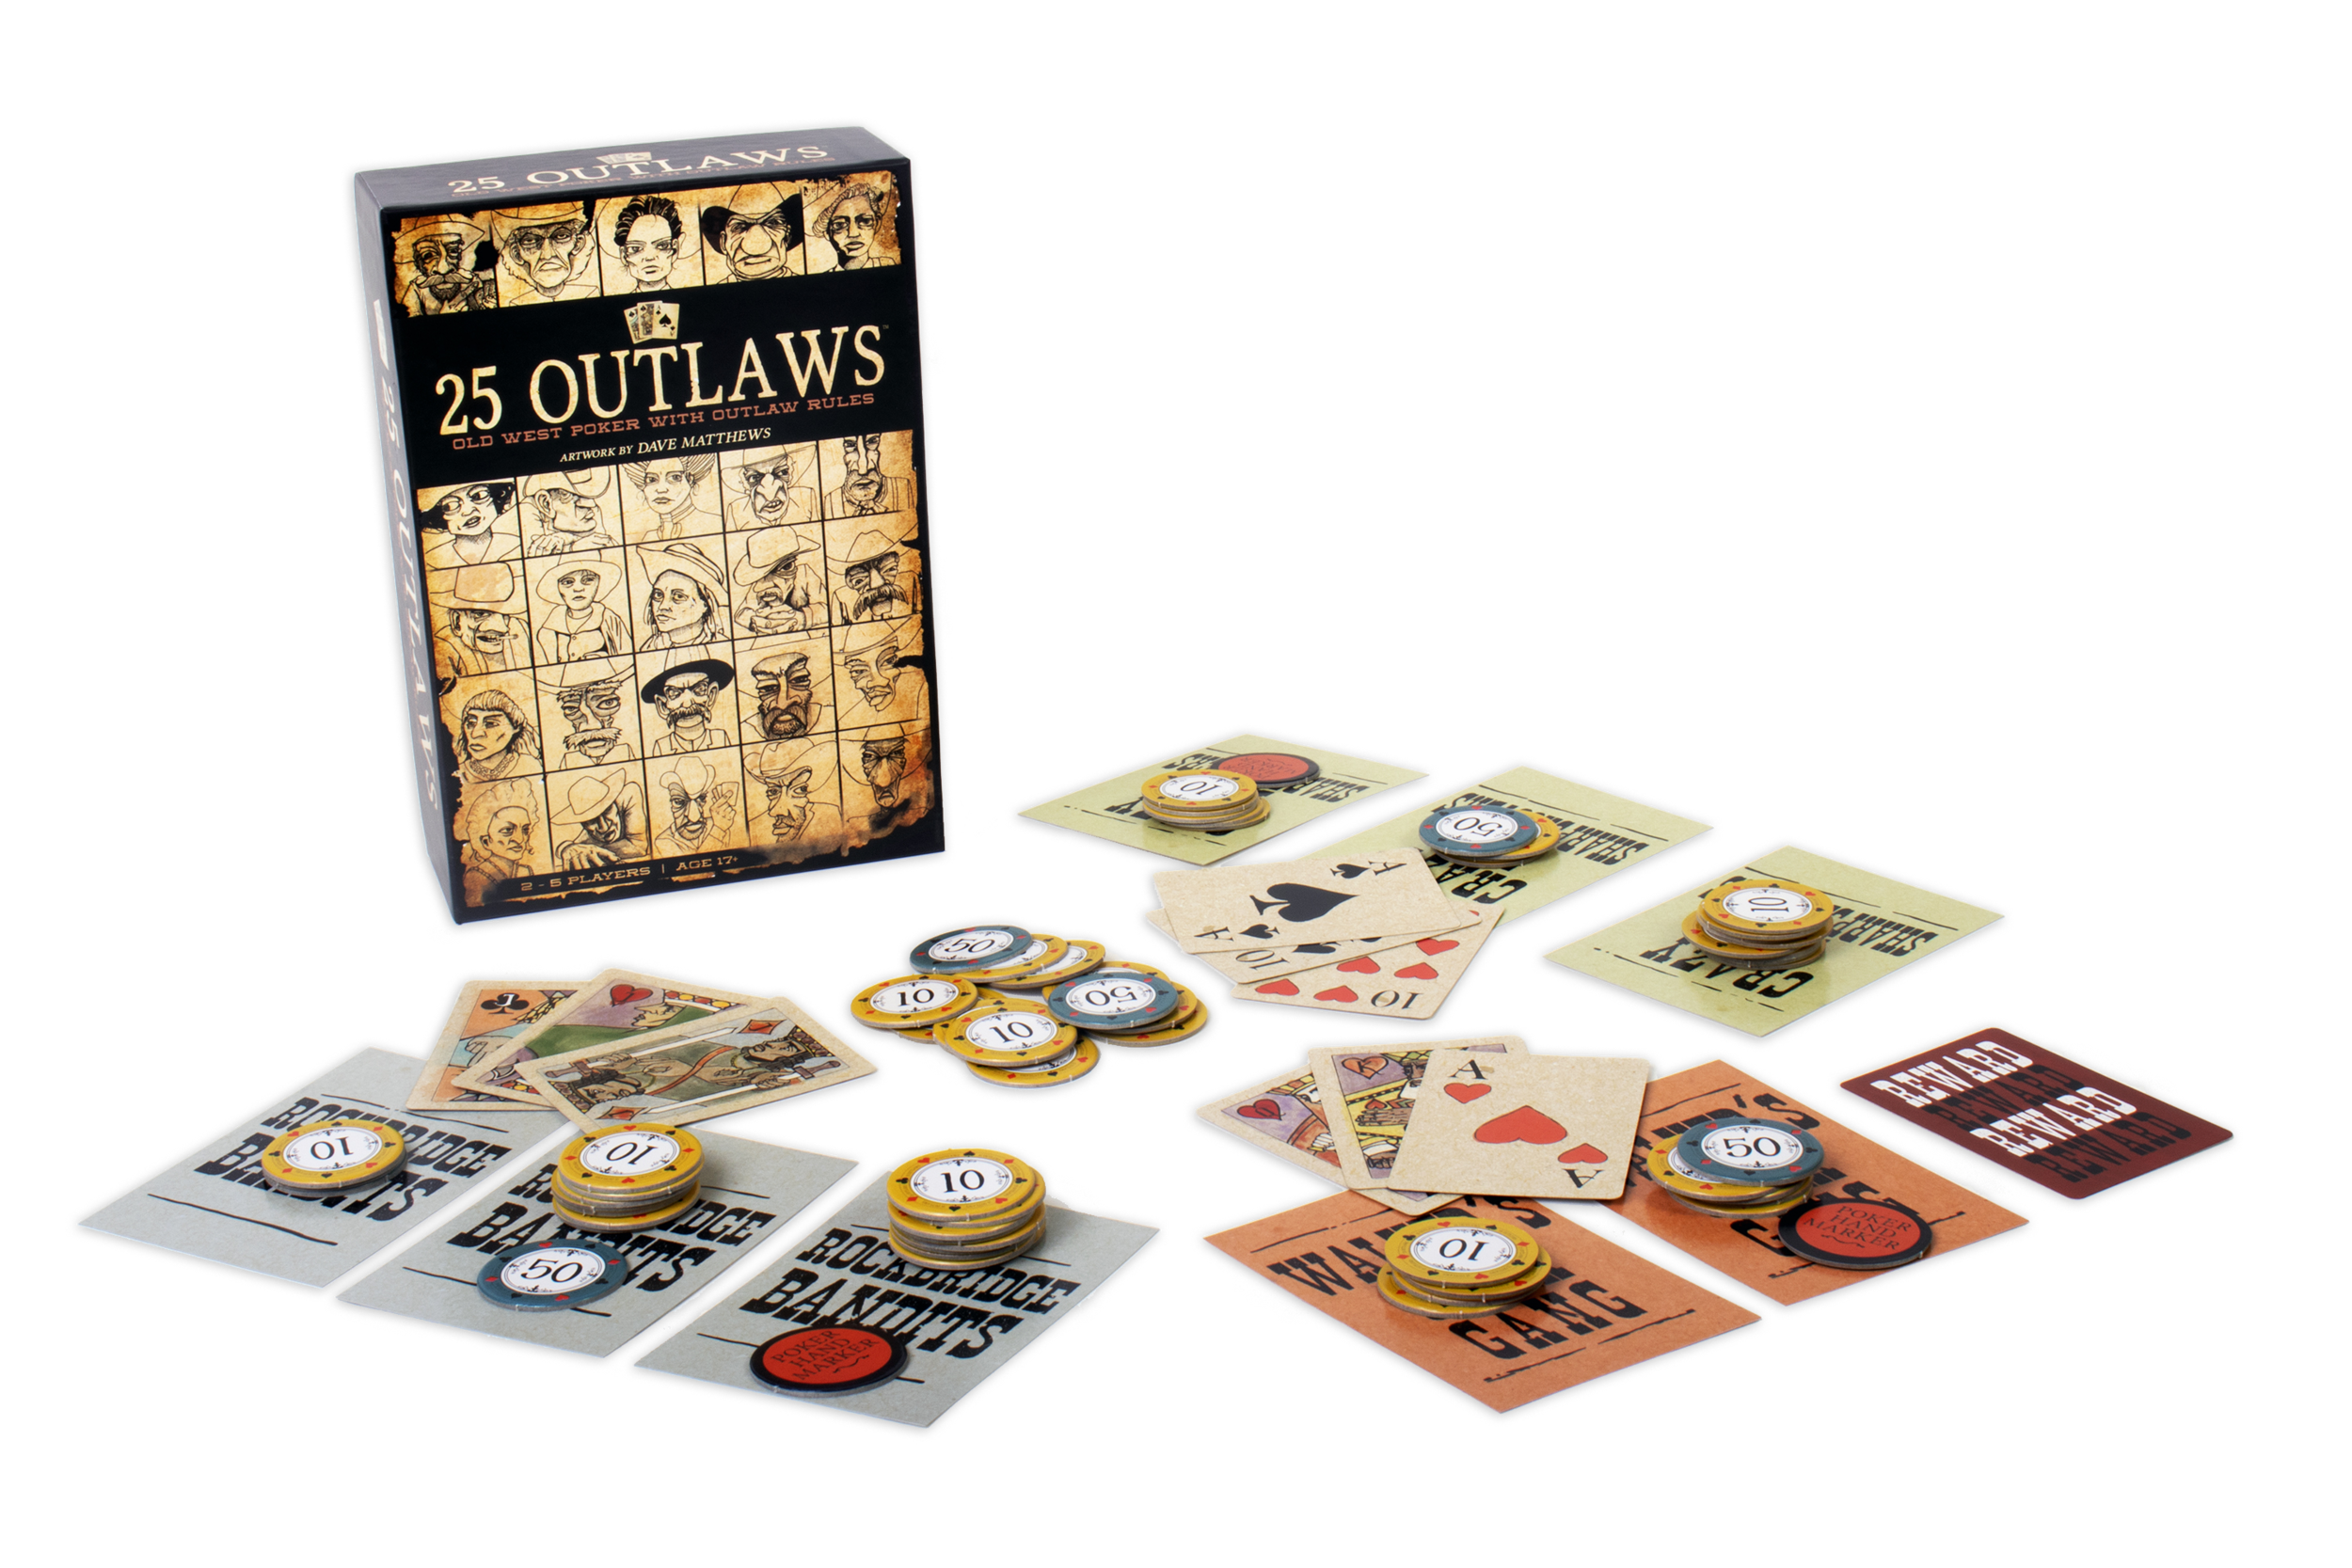 25 Outlaws_Box and Poker Hands.png